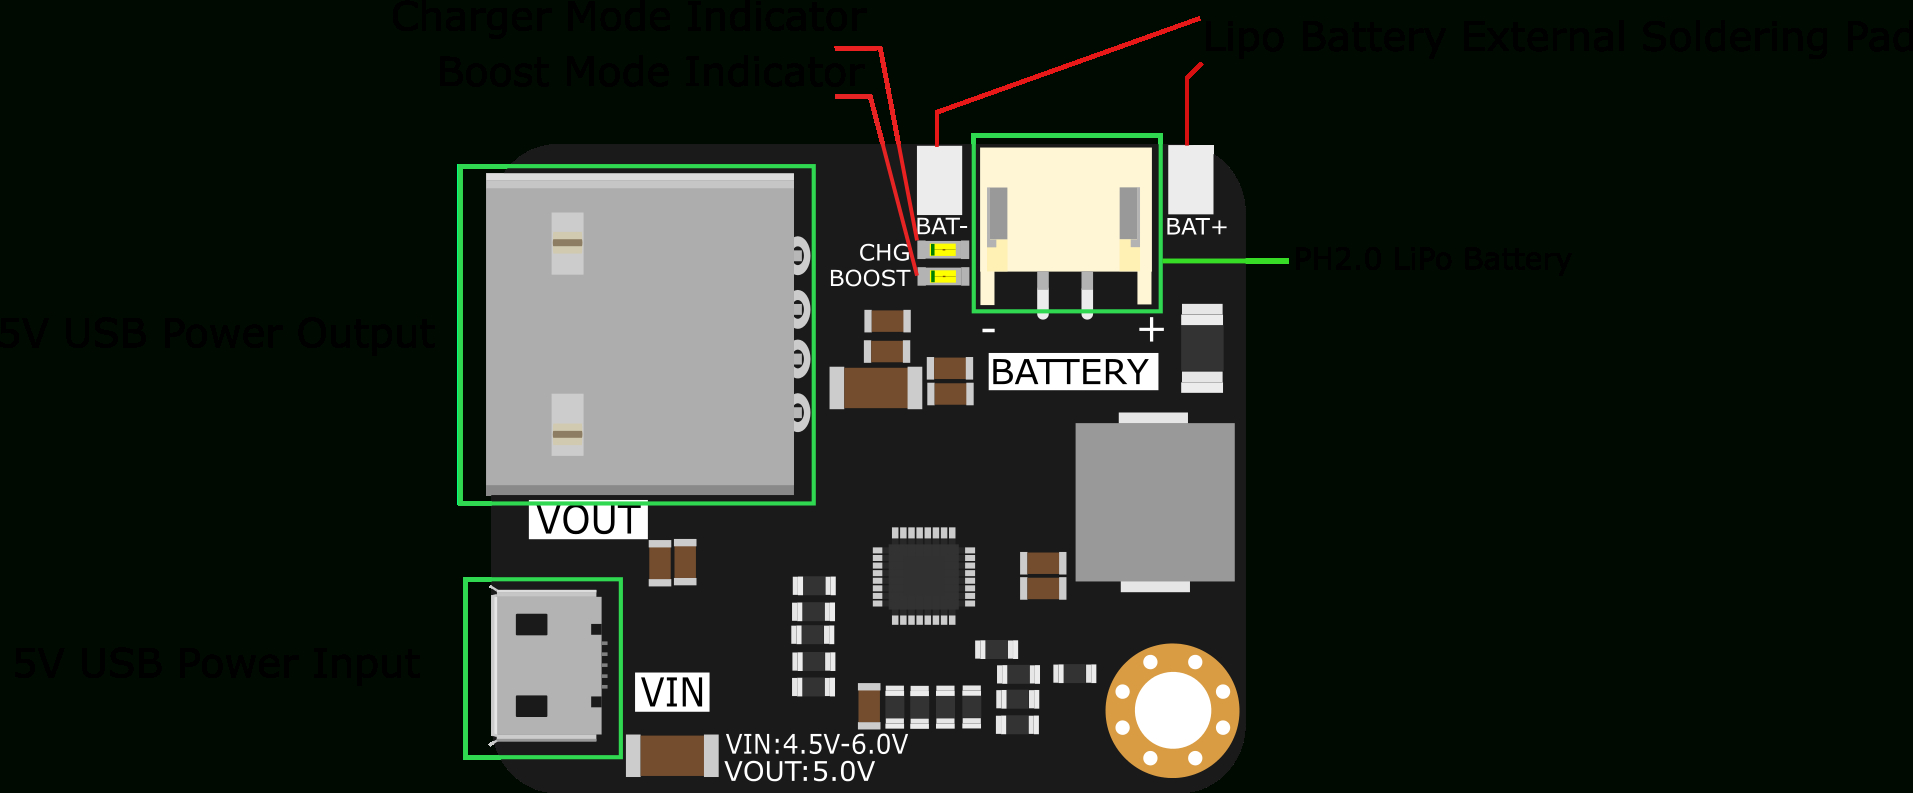 Mp2636 Power Booster & Charger Module - Dfrobot - Usb Battery Charger Wiring Diagram